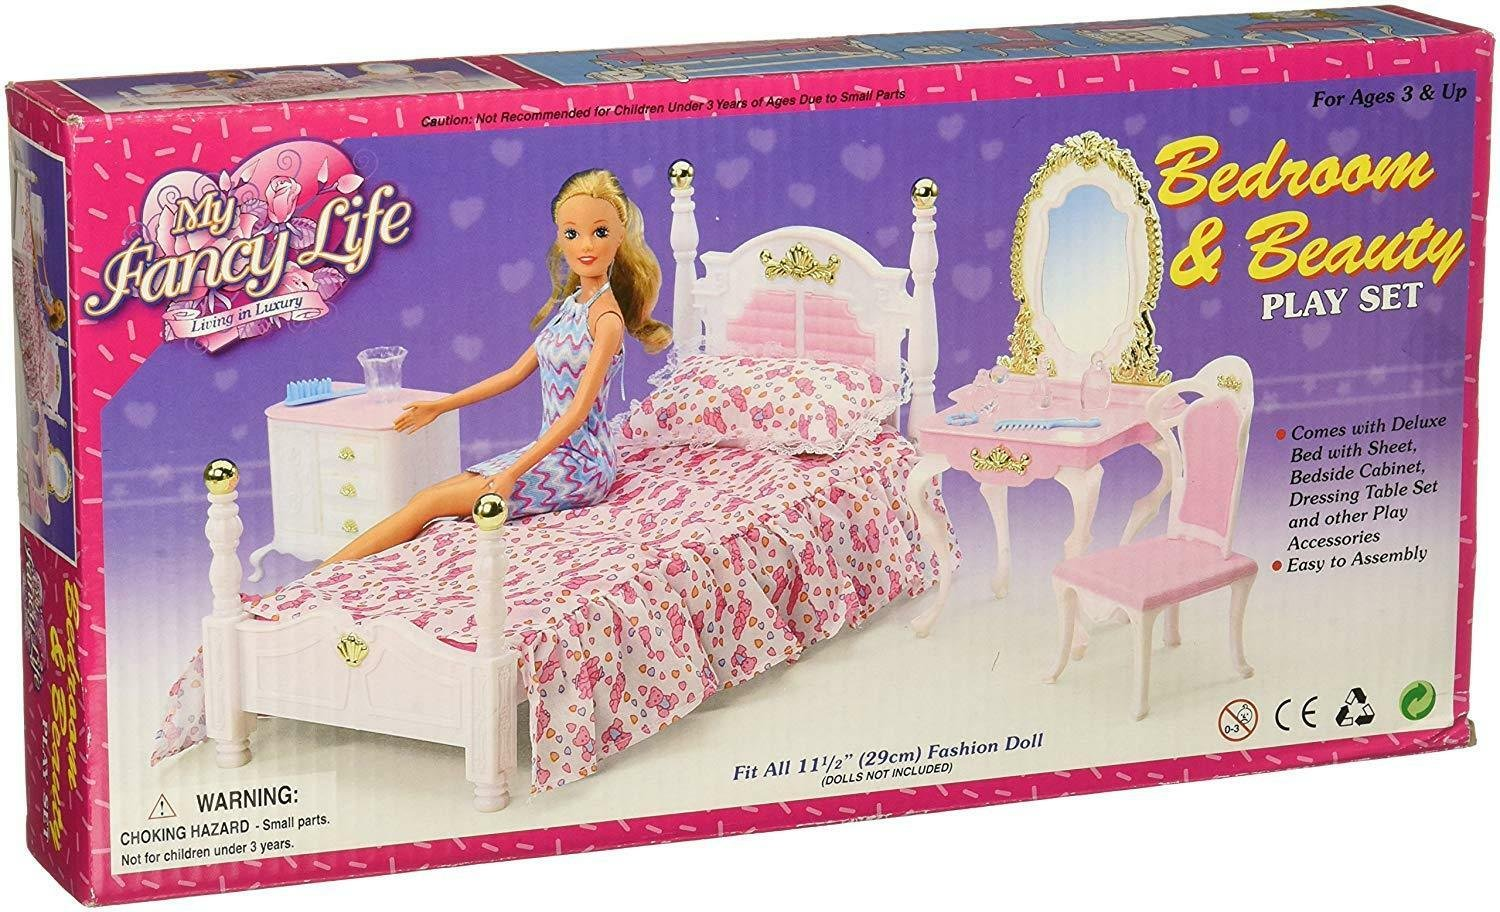 My Fancy Life Barbie Size Dollhouse Furniture Bed Room & Beauty Play Set